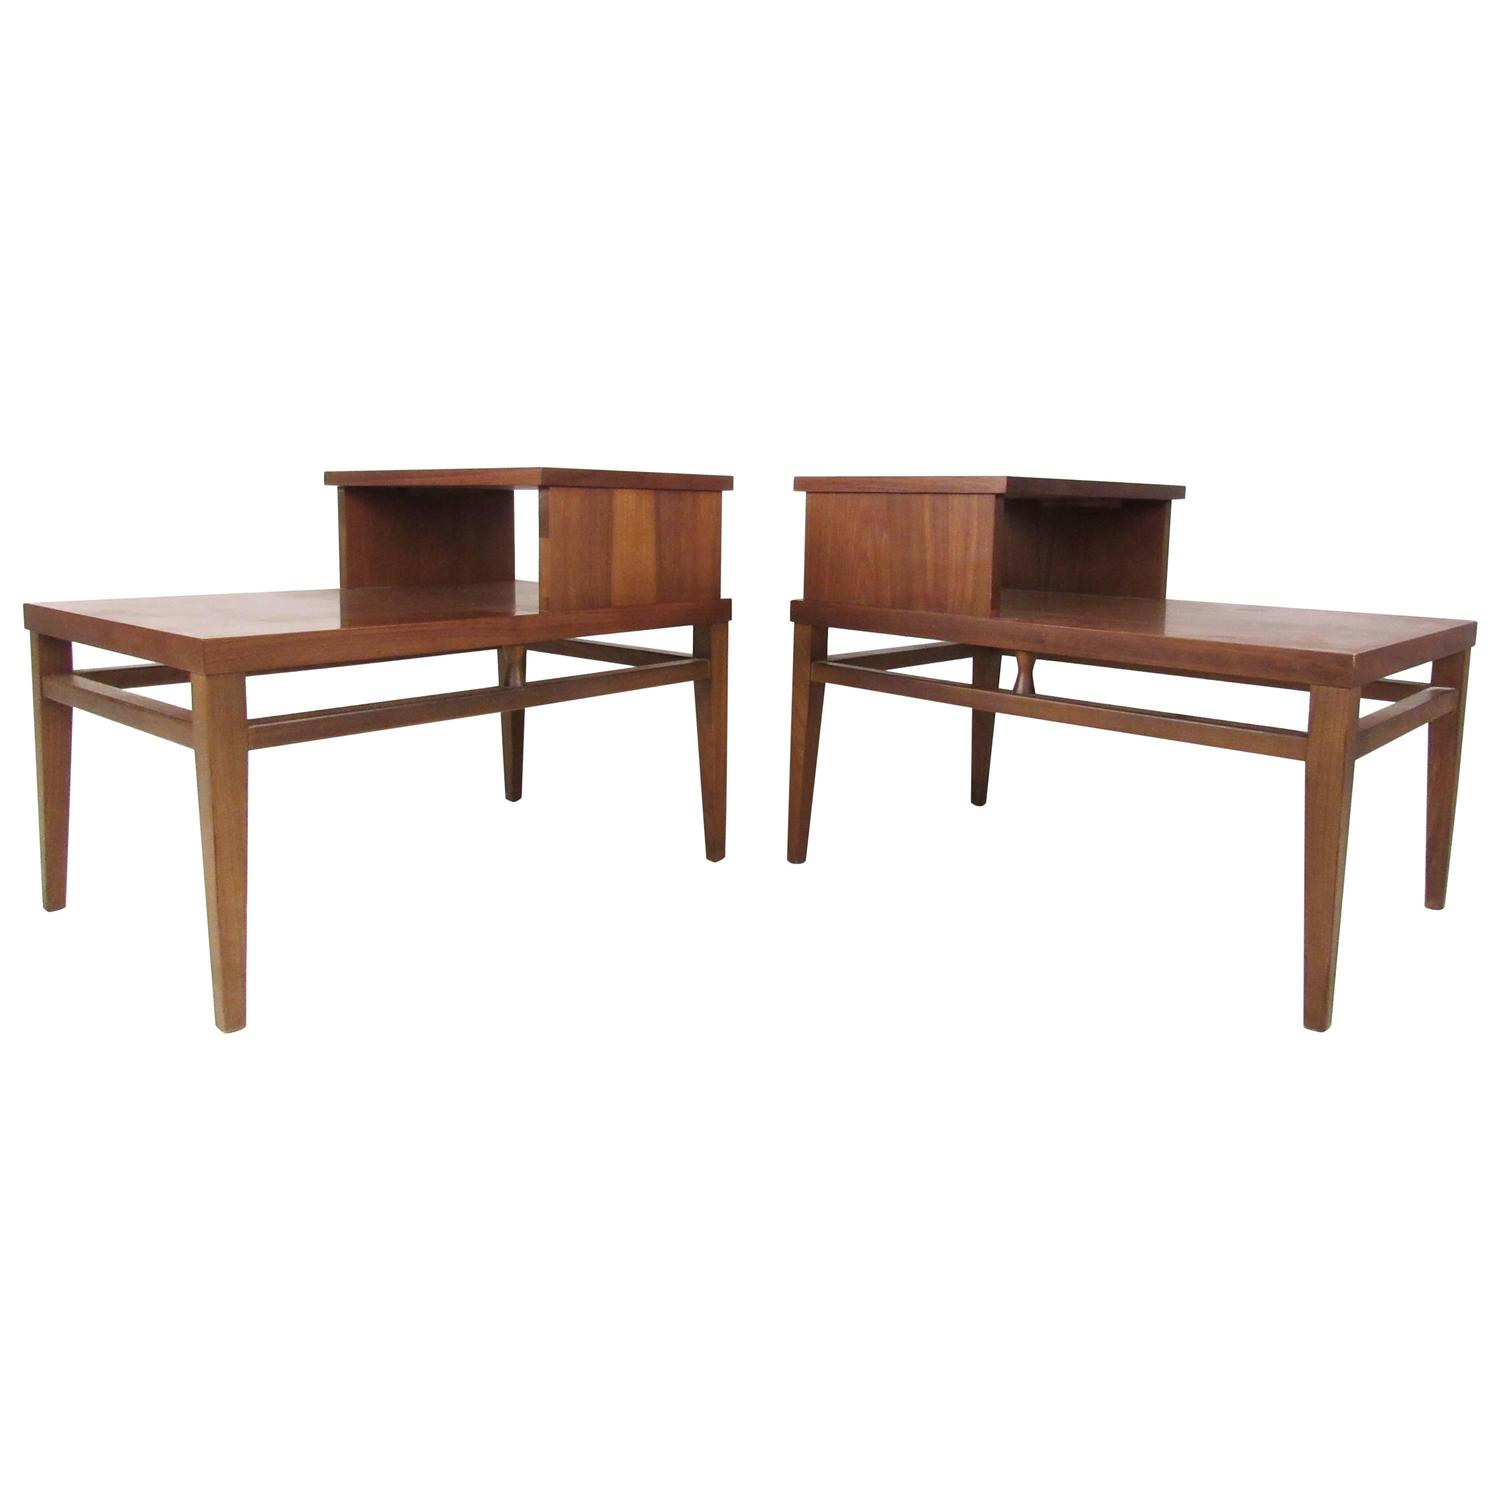 mid century modern two tier end tables by lane for sale at 1stdibs. Black Bedroom Furniture Sets. Home Design Ideas